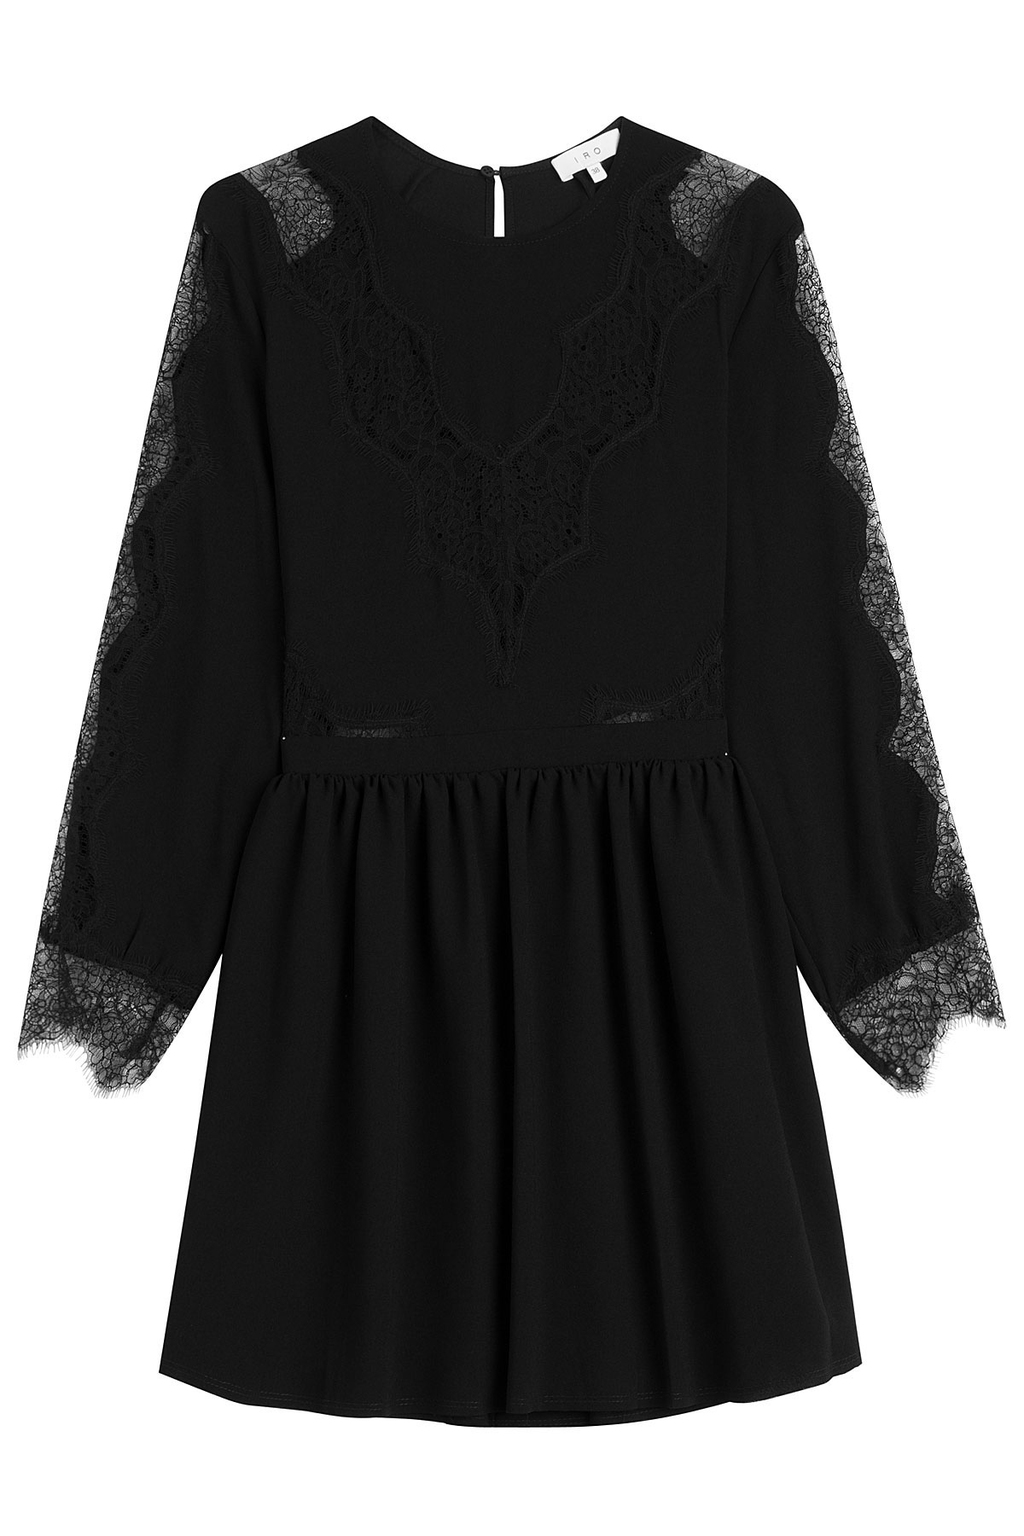 Dress With Lace Black - length: mini; pattern: plain; predominant colour: black; occasions: evening; fit: fitted at waist & bust; style: fit & flare; neckline: crew; sleeve length: 3/4 length; sleeve style: standard; pattern type: fabric; texture group: woven light midweight; fibres: viscose/rayon - mix; embellishment: lace; season: s/s 2016